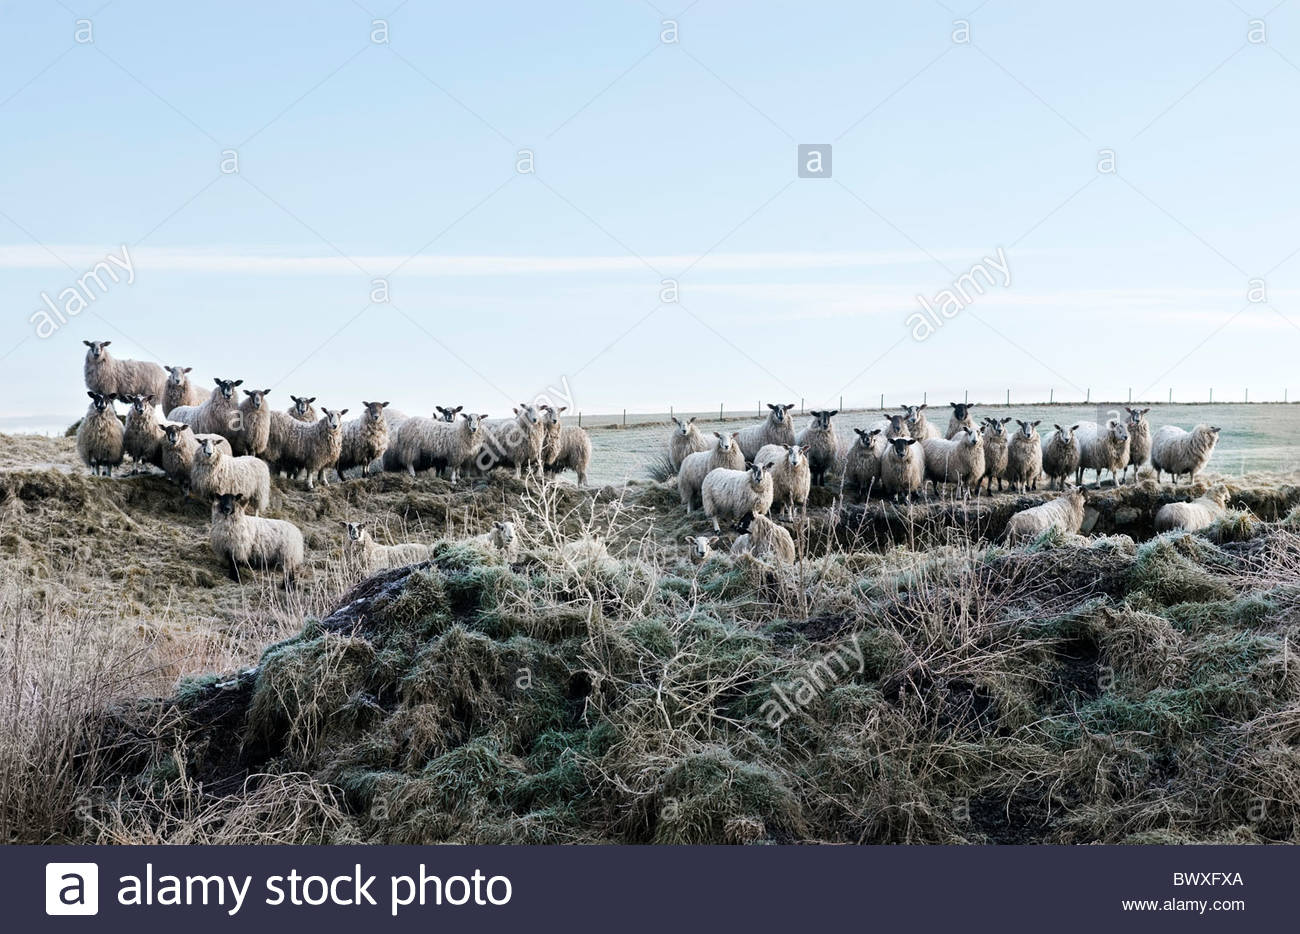 Line of sheep amongst frosted grass - Stock Image